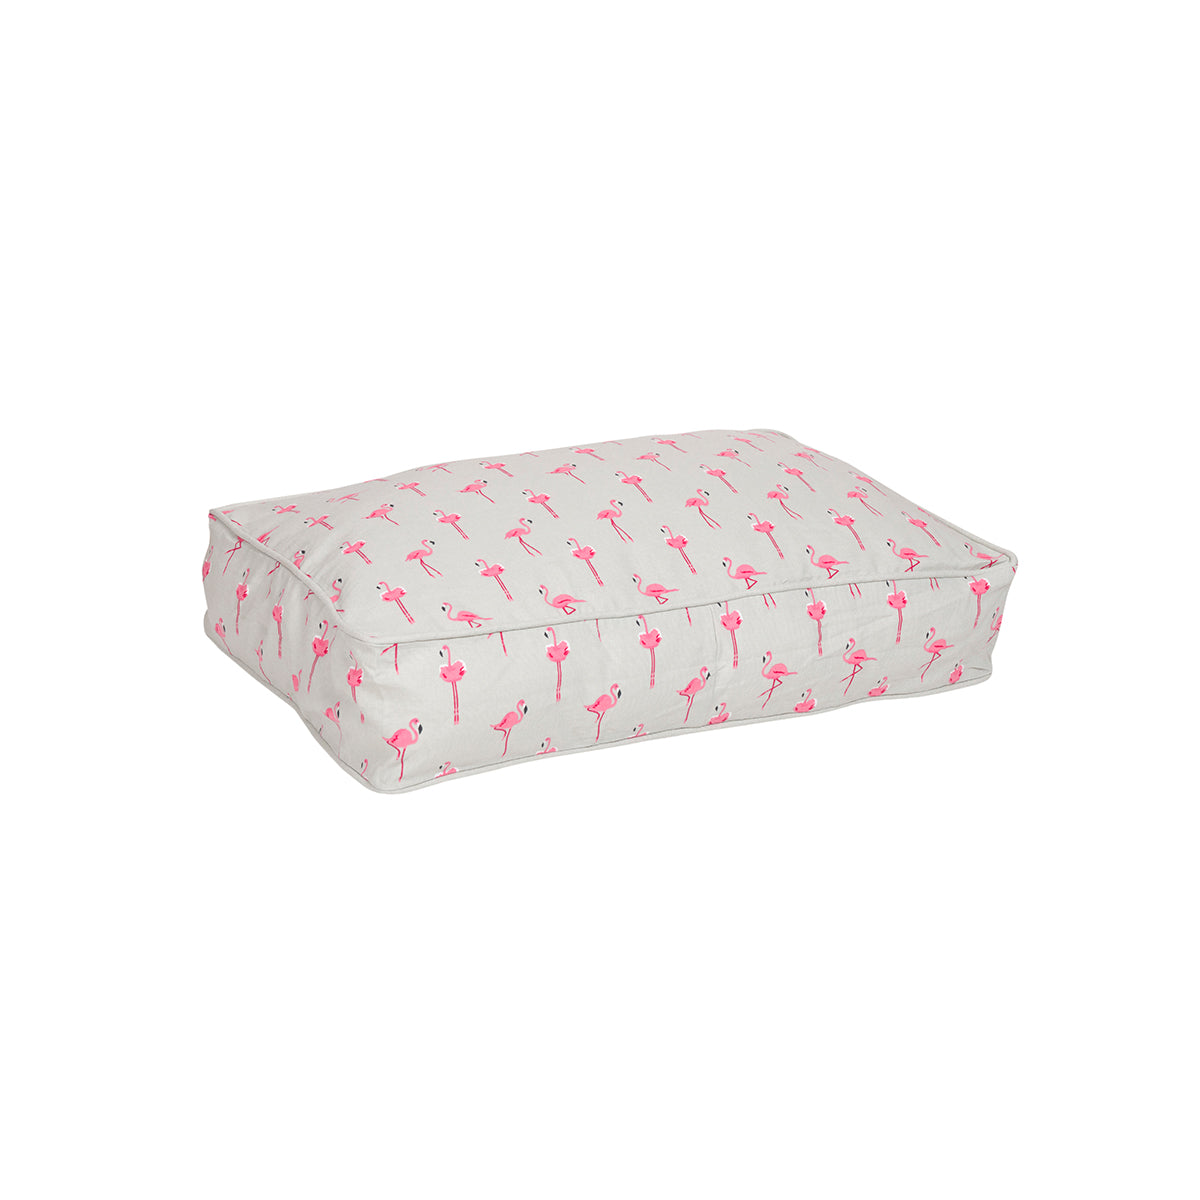 Flamingos Pet Bed Mattress by Sophie Allport